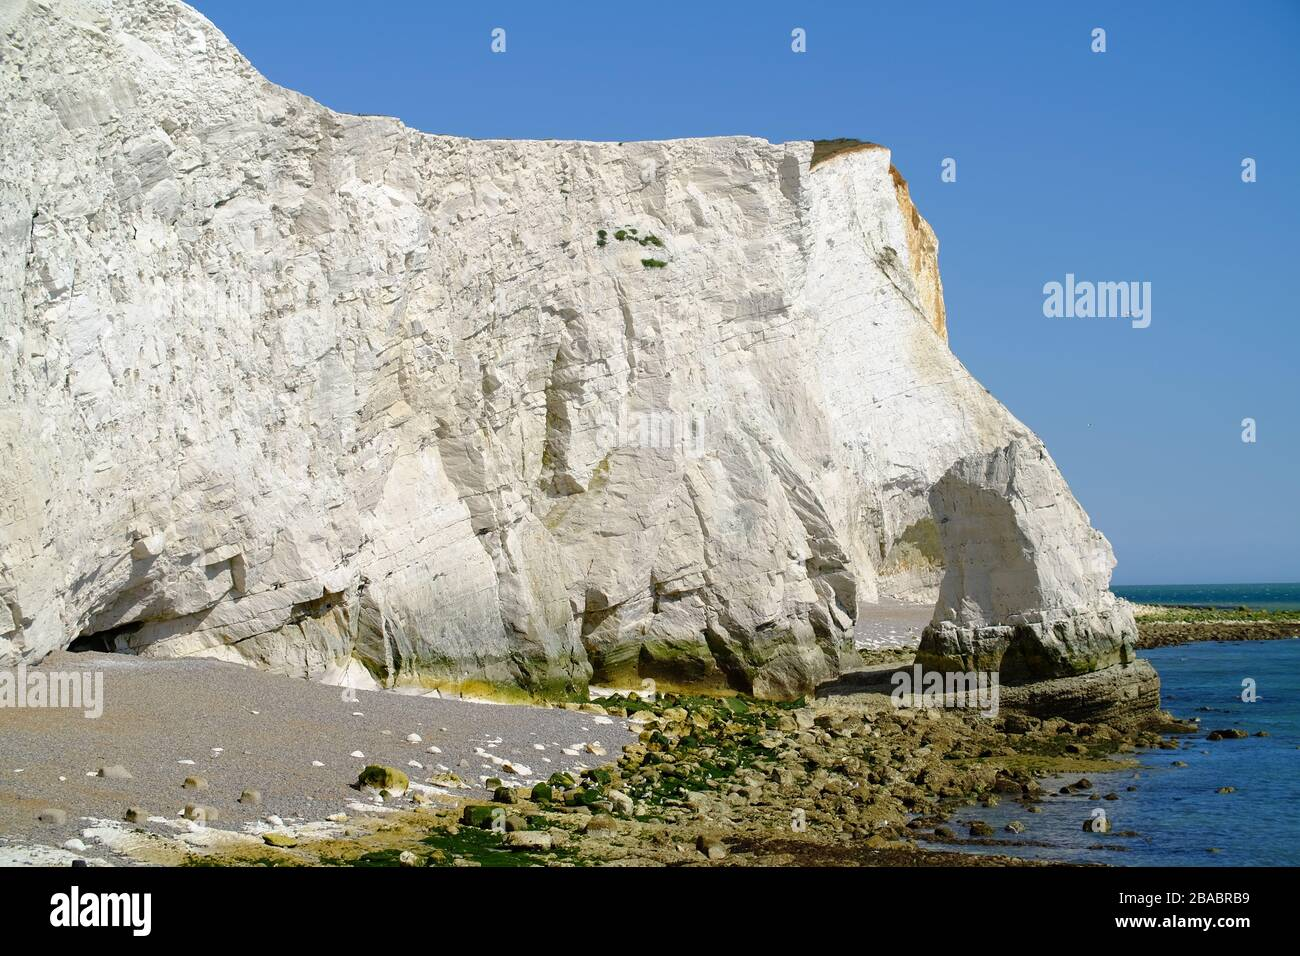 Chalk cliffs at Seaford Head, East Sussex, UK. Stock Photo